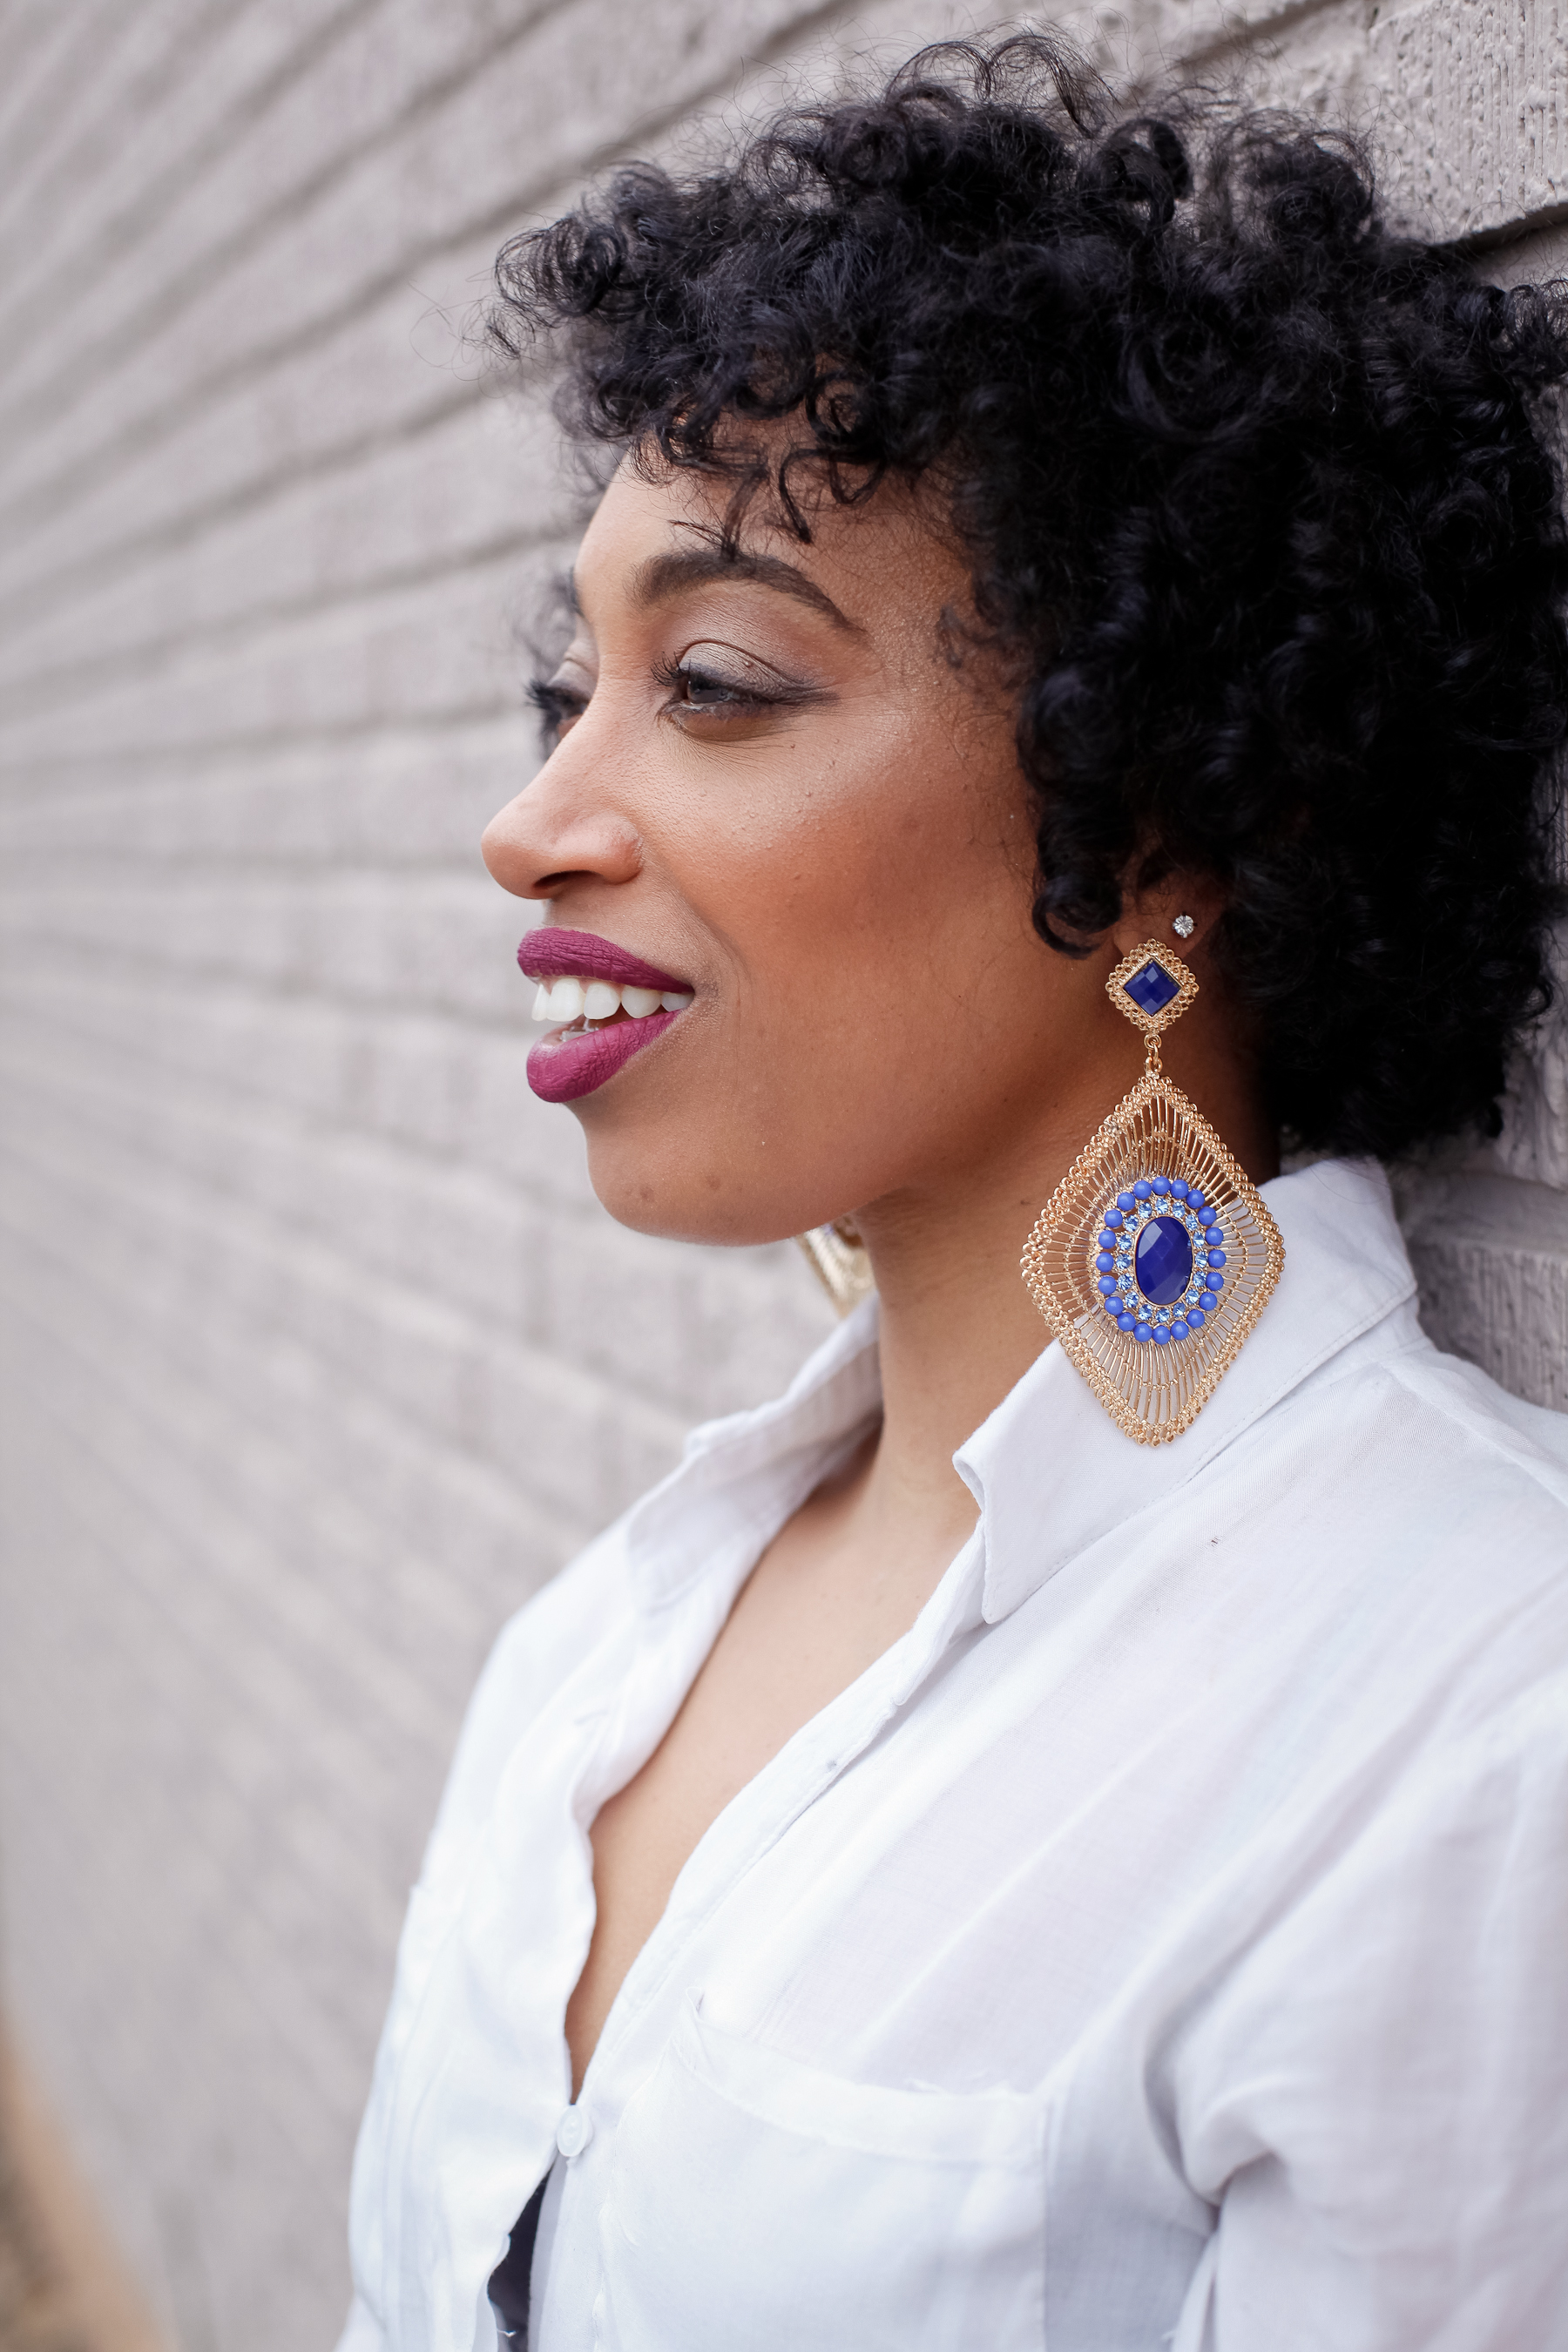 Andrea Fenise Memphis Fashion Blogger shares beauty looks at 30